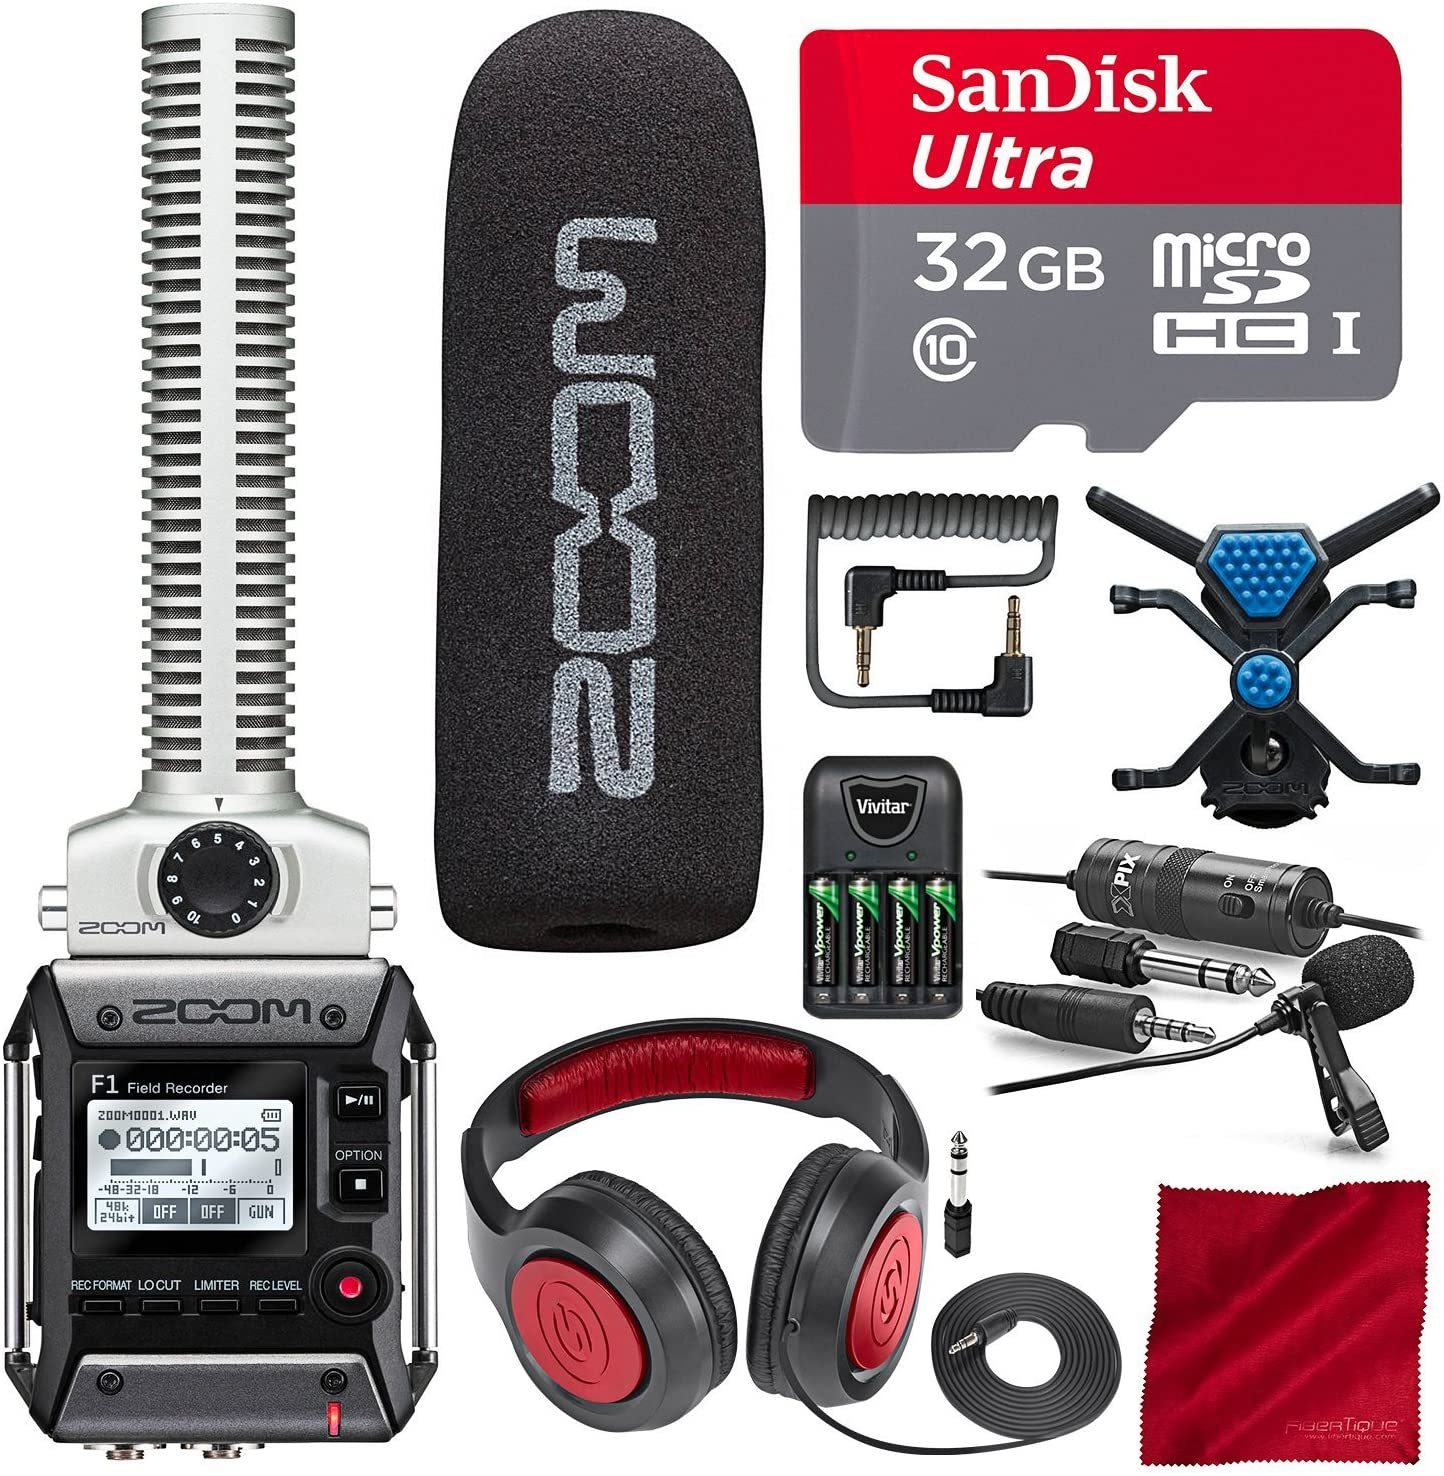 Zoom F1-SP Field Recorder with Shotgun Microphone F1-SP Package with 32GB Card, Samson Headphones, Xpix Lavalier Mic, and Platinum Bundle